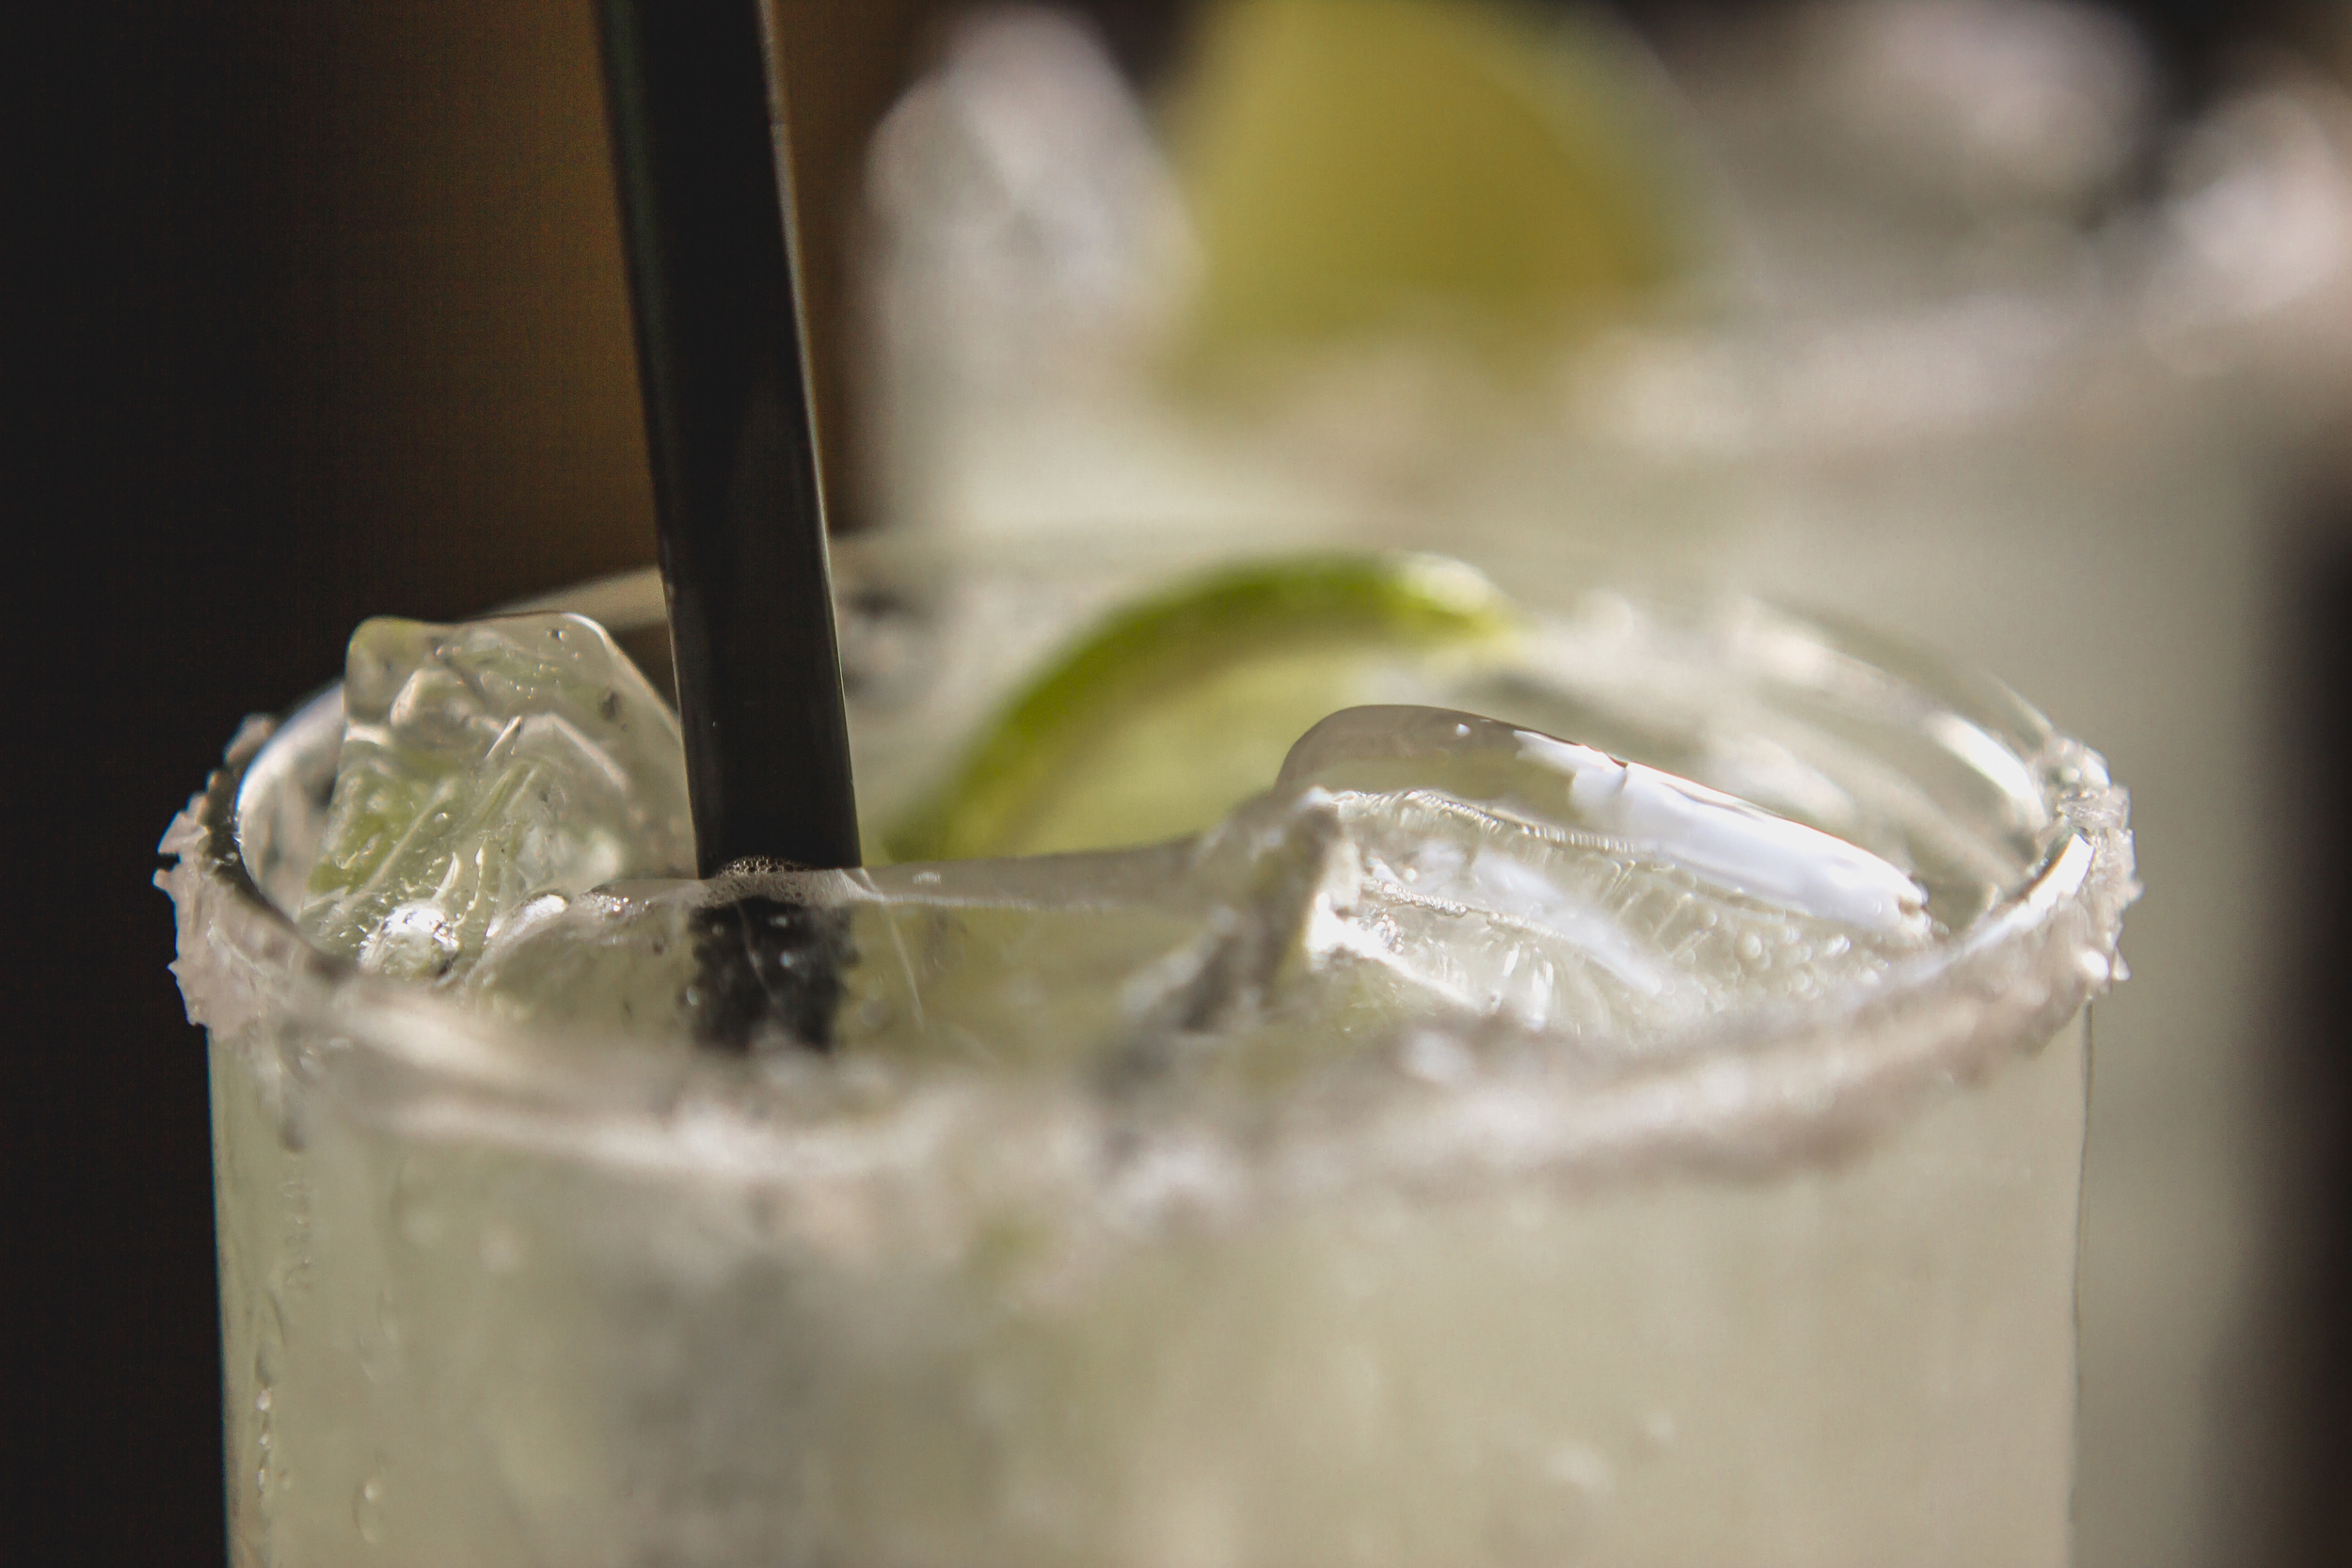 Mulberry St. Cantina finally opened for business in July. Have you checked it out yet?